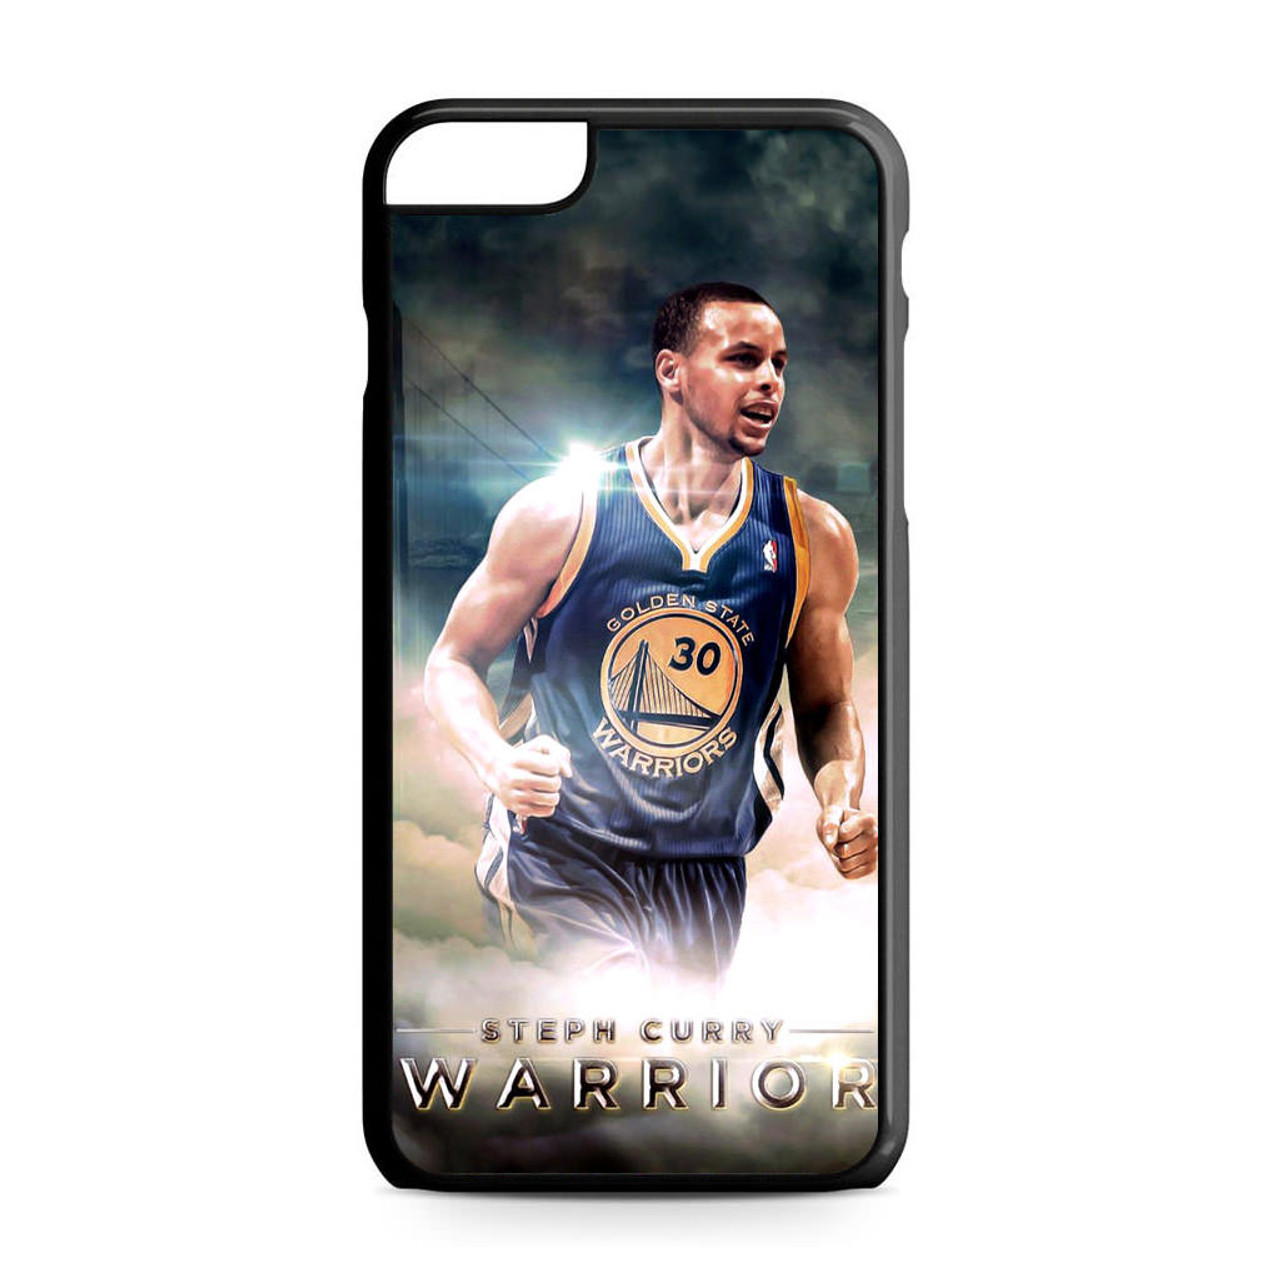 fb0b7067662d Stephen Curry Warrior Paster iPhone 6 Plus 6S Plus Case - CASESHUNTER